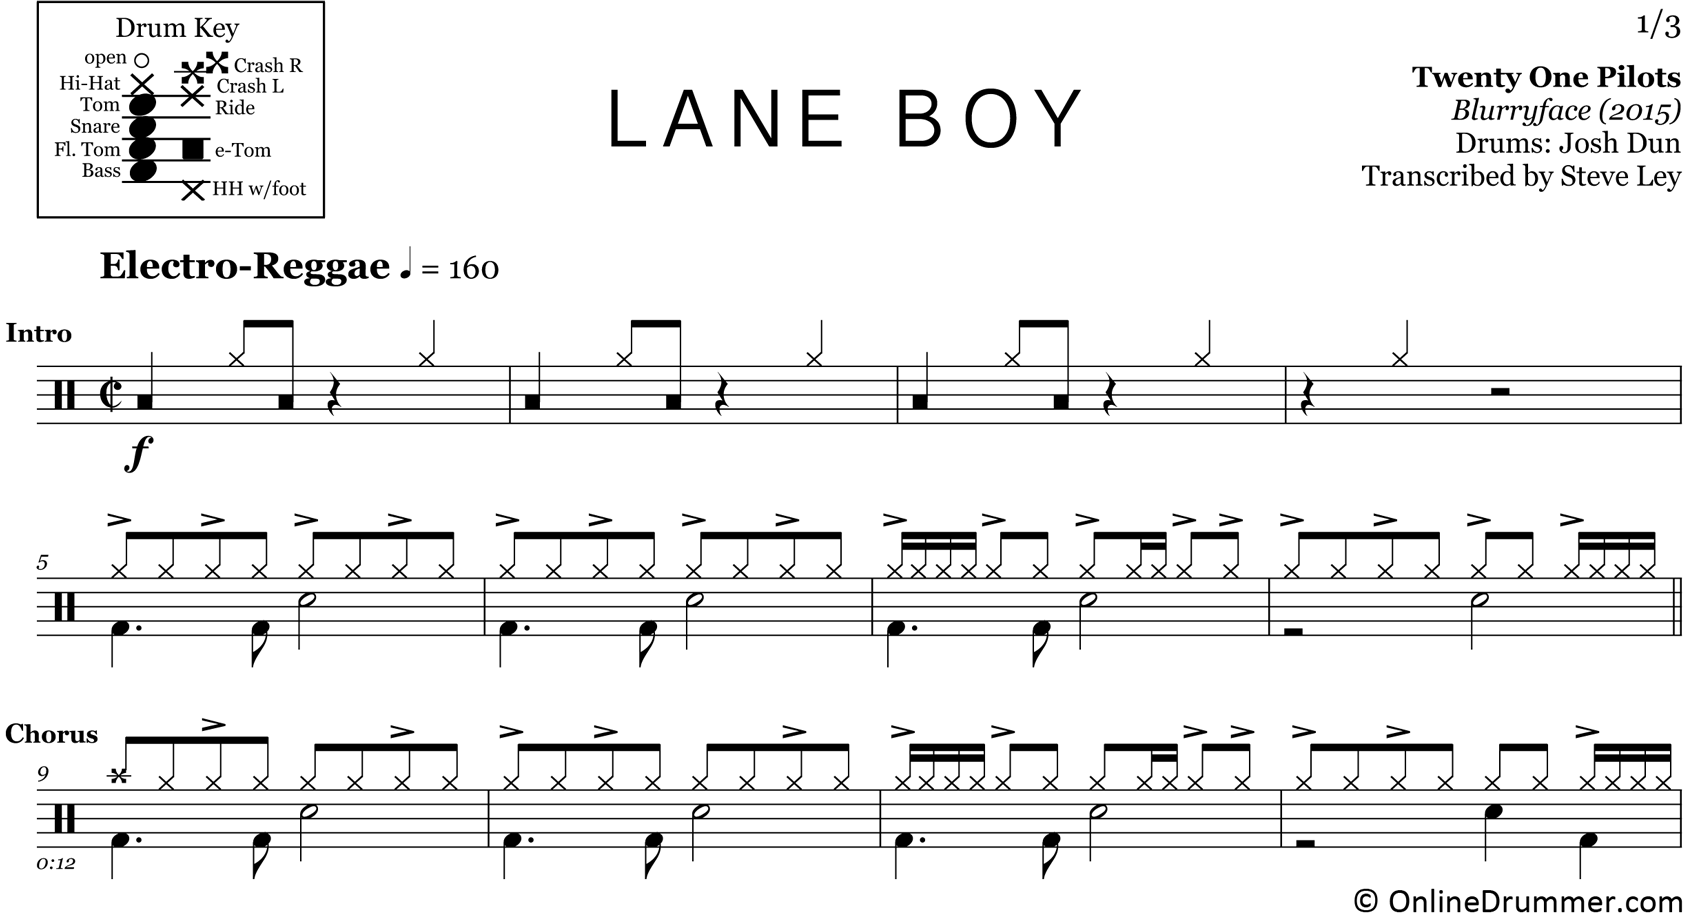 Lane Boy - Twenty One Pilots - Drum Sheet Music